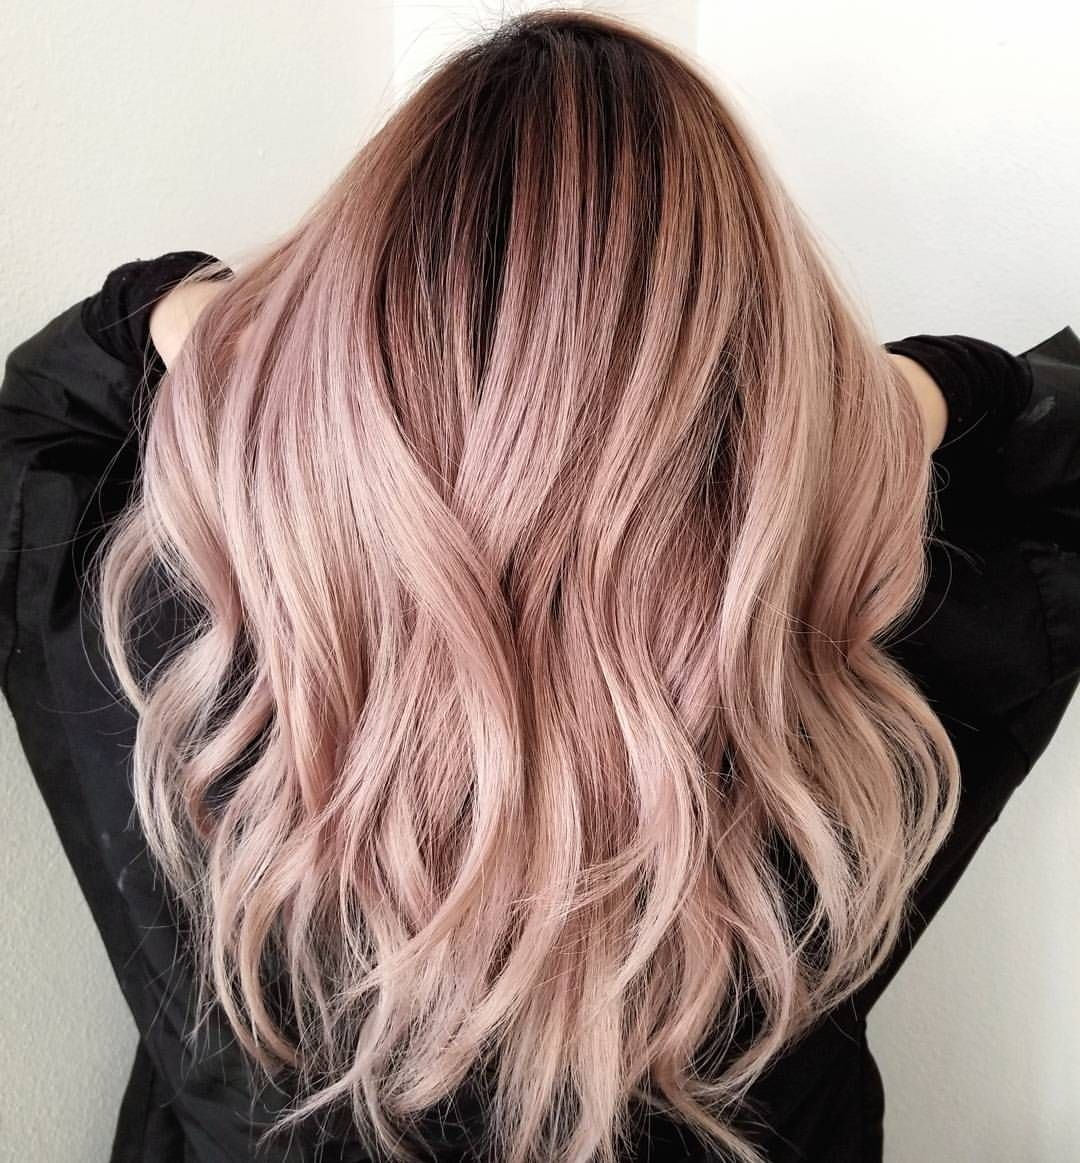 2 454 Likes 40 Comments Sammi Wang Sammiiwang On Instagram Client Has A 4 Inches Grown Out Rooty Ombr Ombre Hair Blonde Light Pink Hair Hair Color Pink